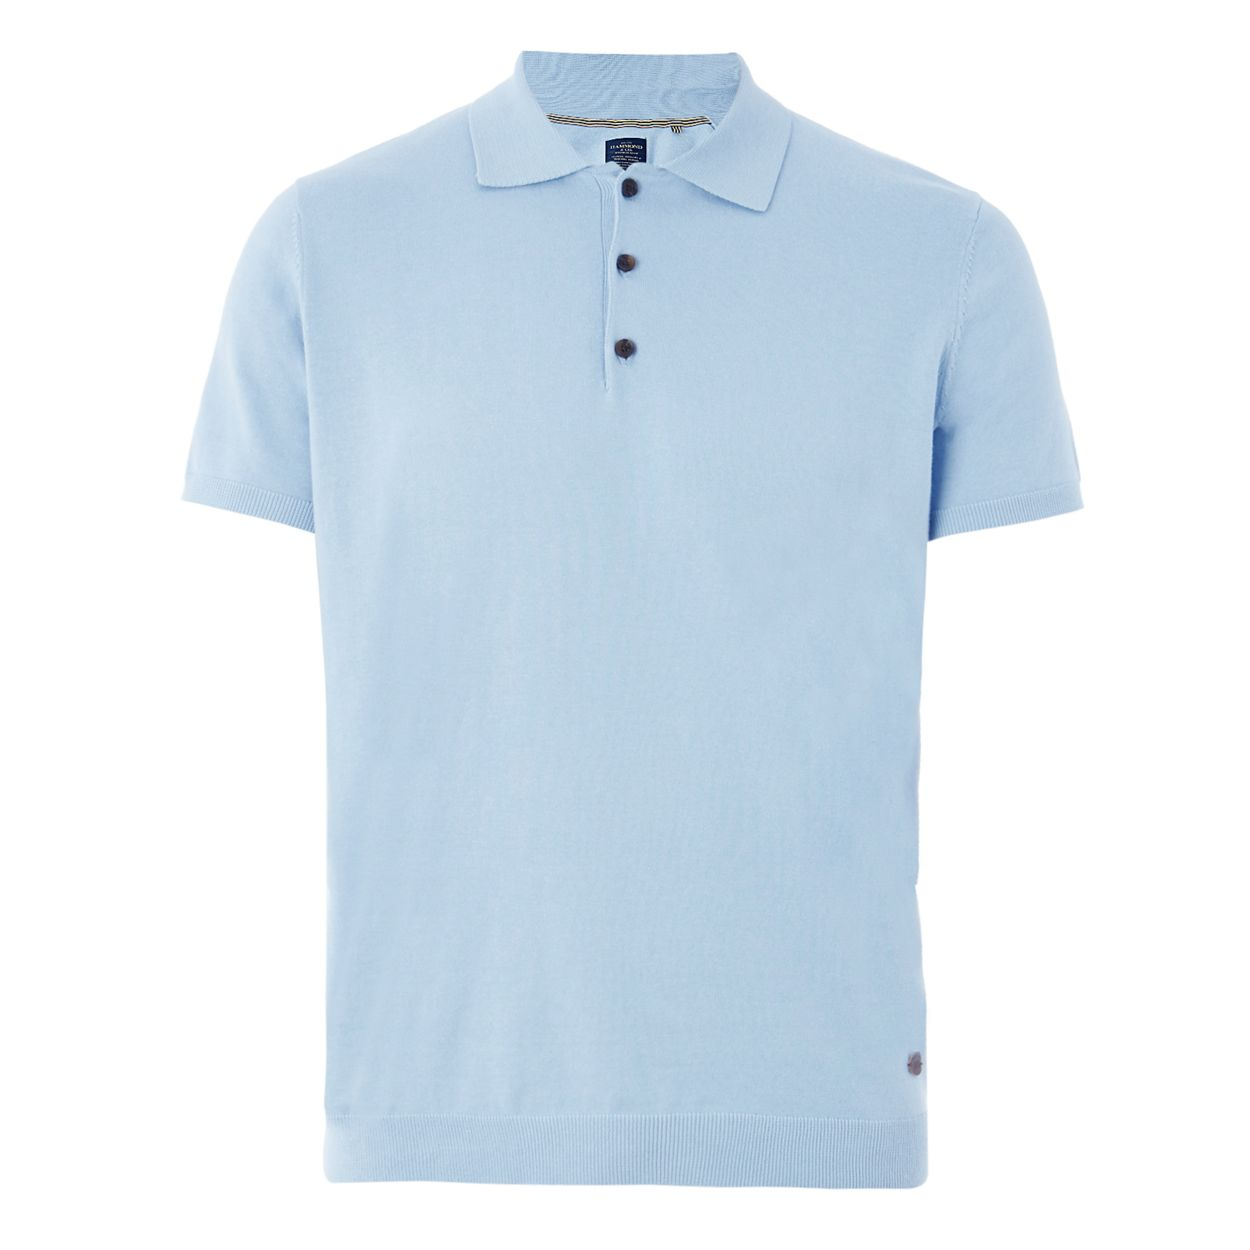 Hammond & Co. by Patrick Grant Light blue knitted polo shirt